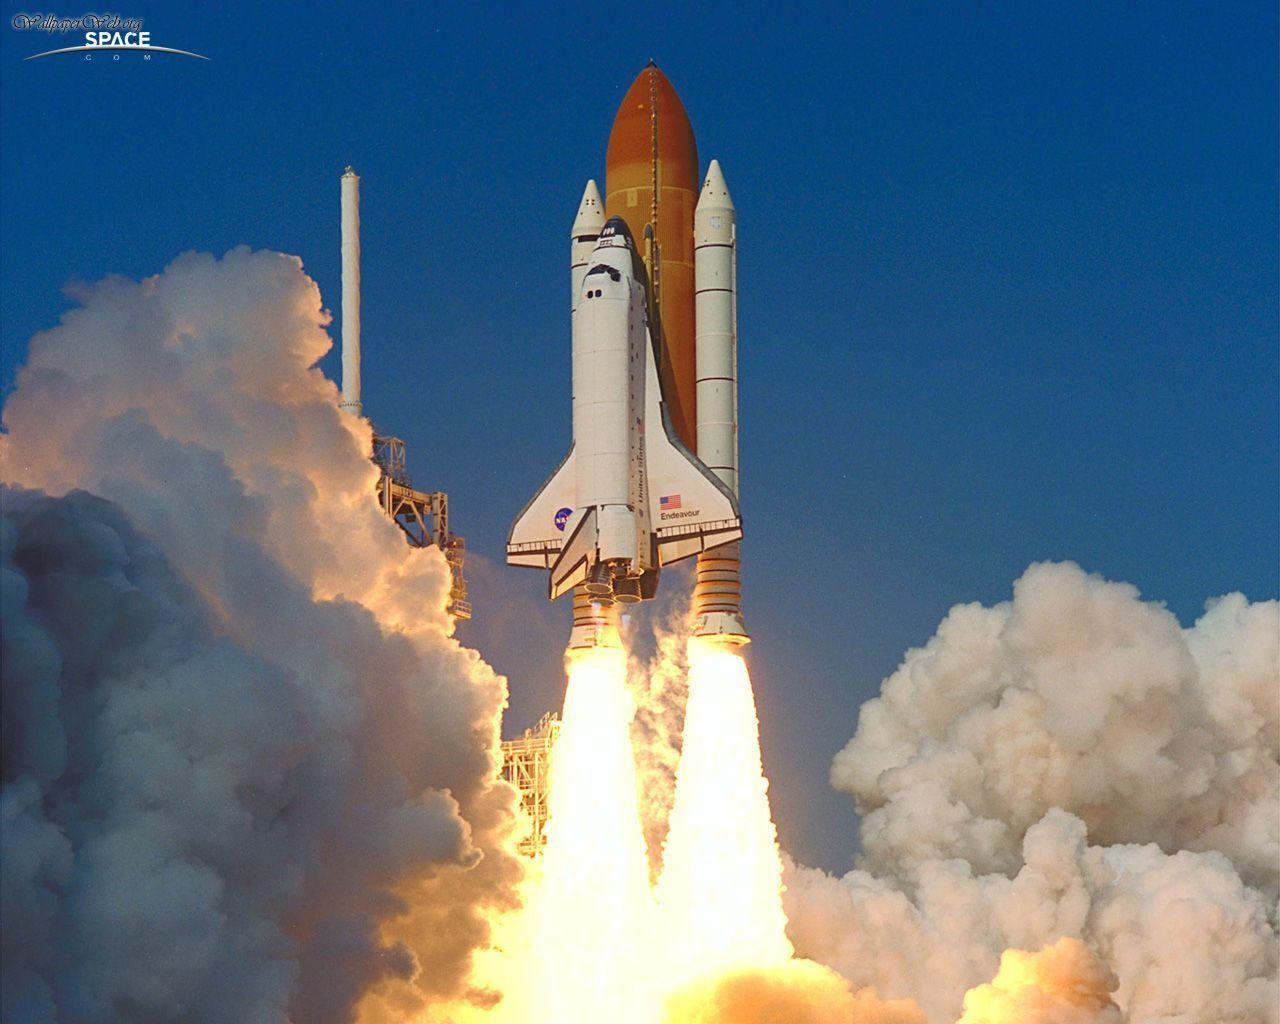 space shuttle space background - photo #2